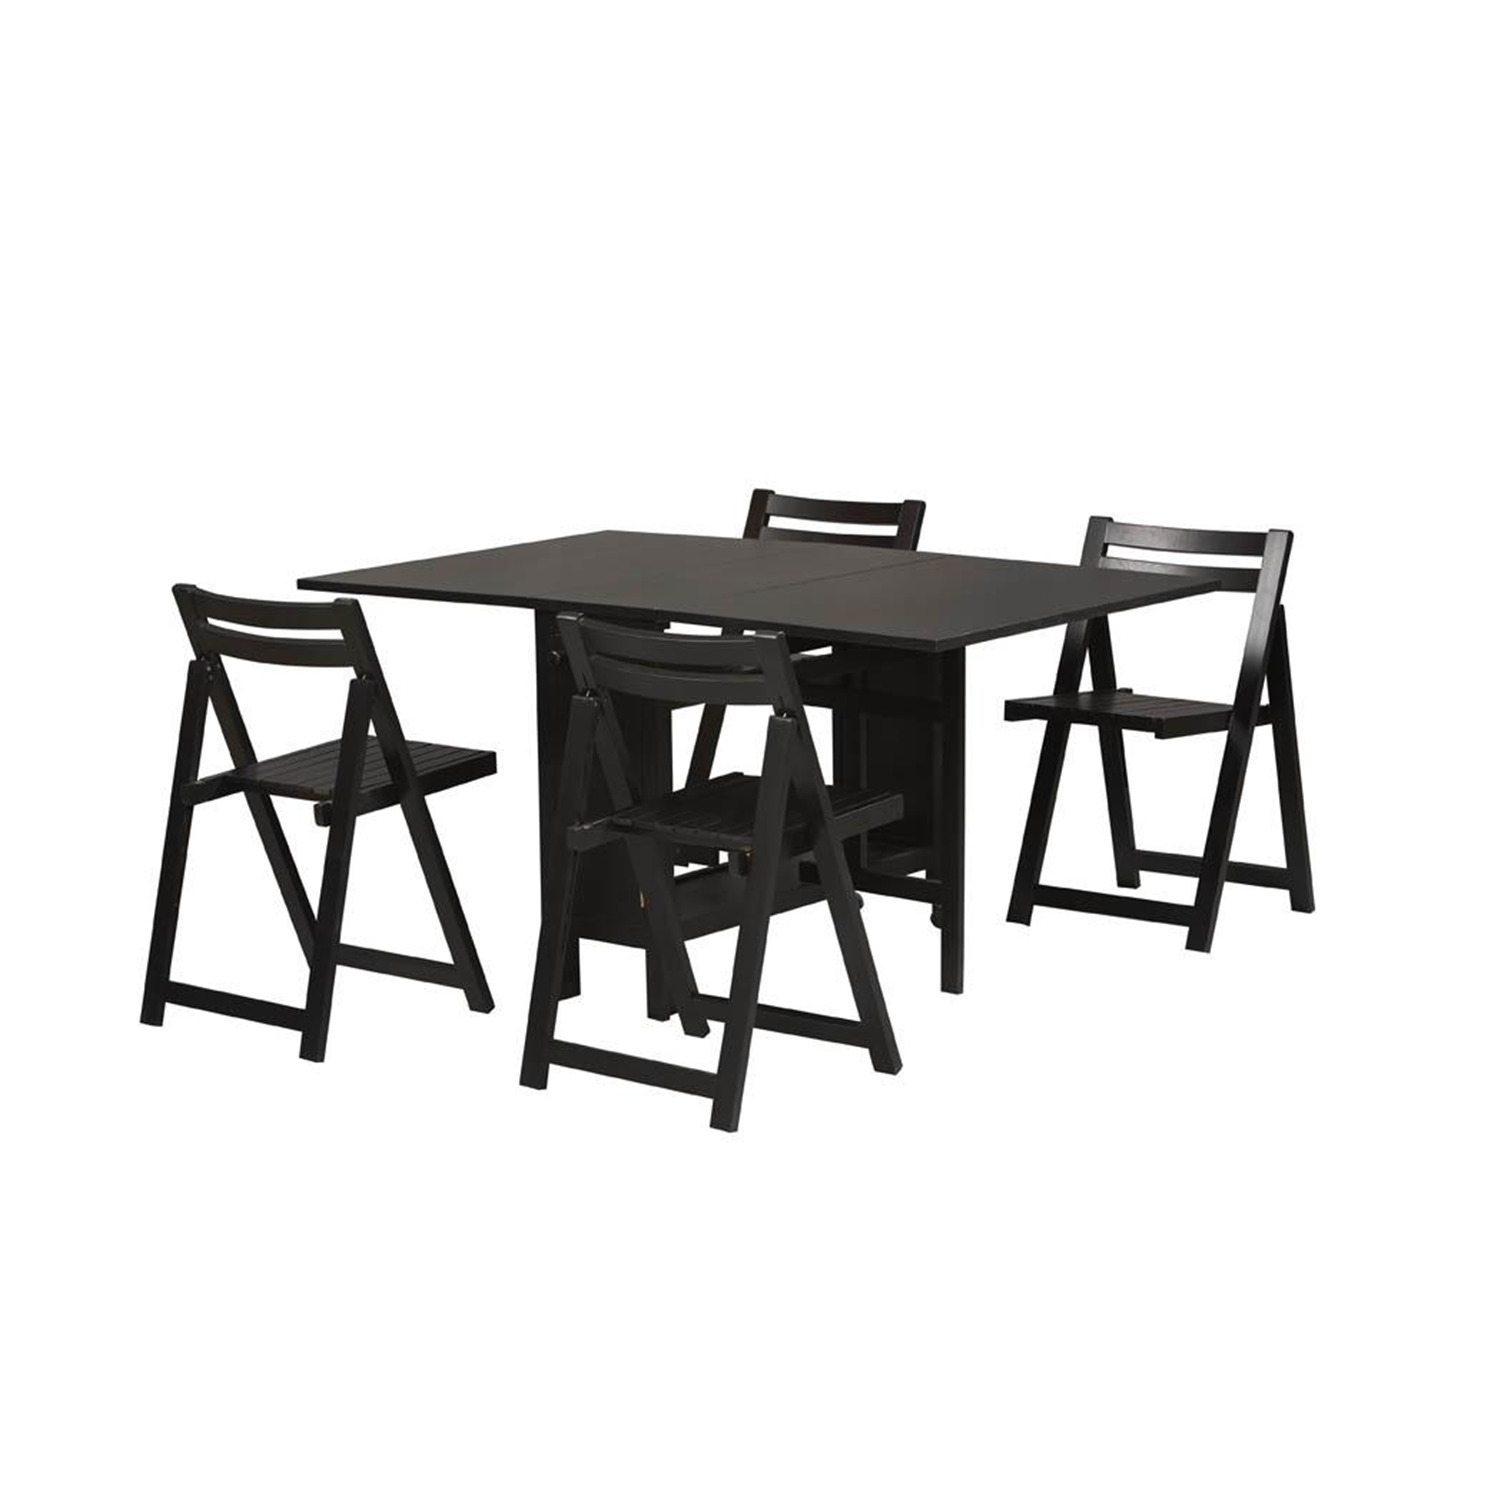 Space saver 5 piece dining set ojcommerce for Space saving dining set